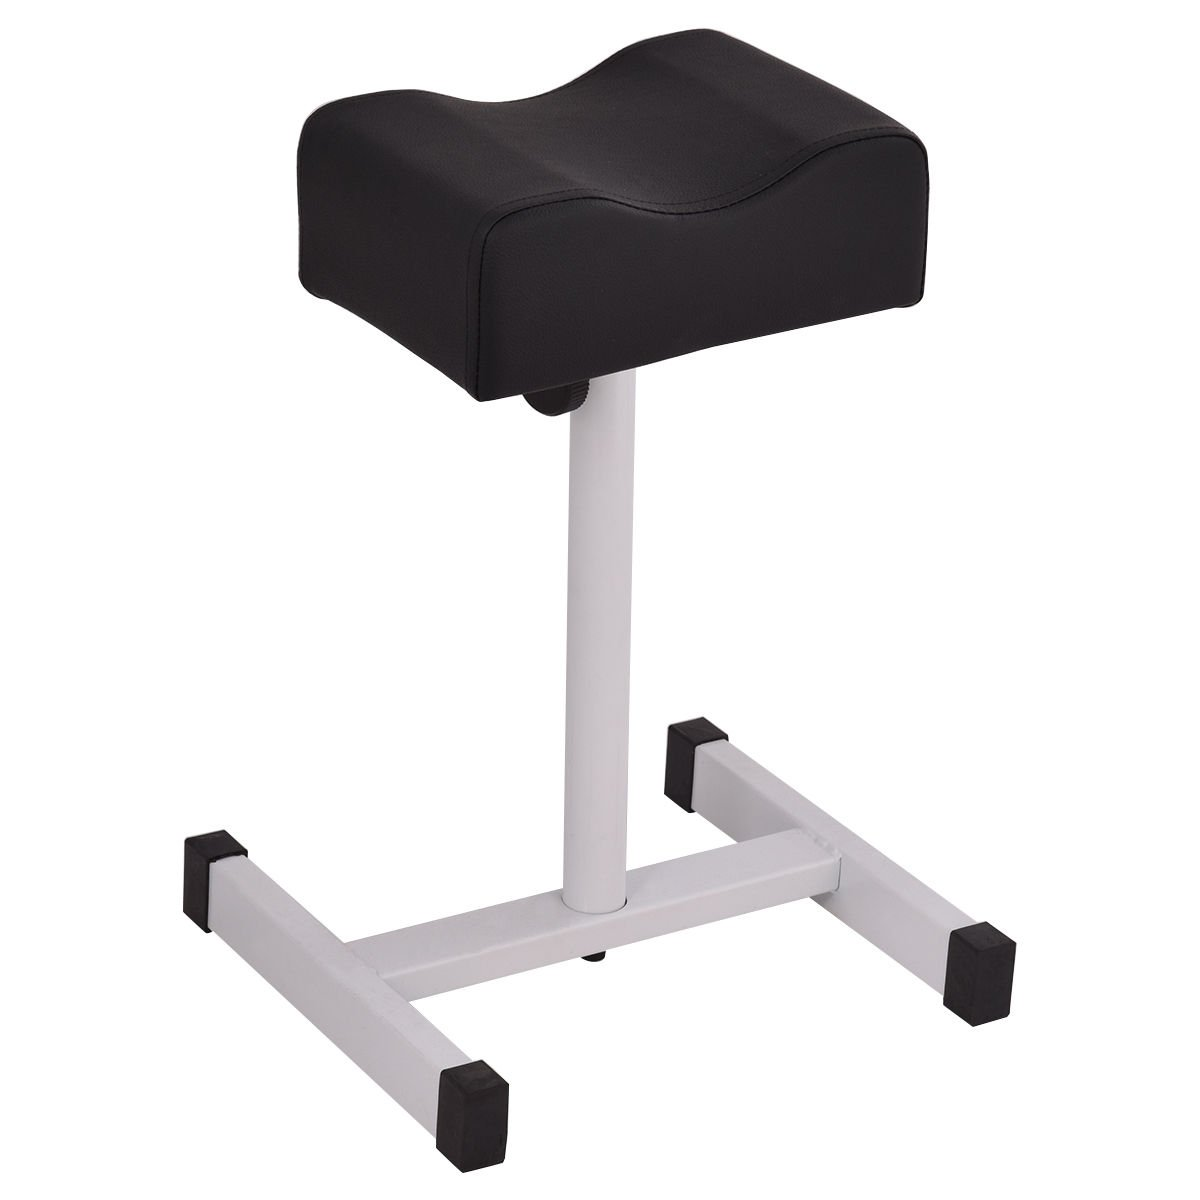 Amazon.com : Salon Nail Pedicure Stool Pedicure Chair DAYTON BLACK ...